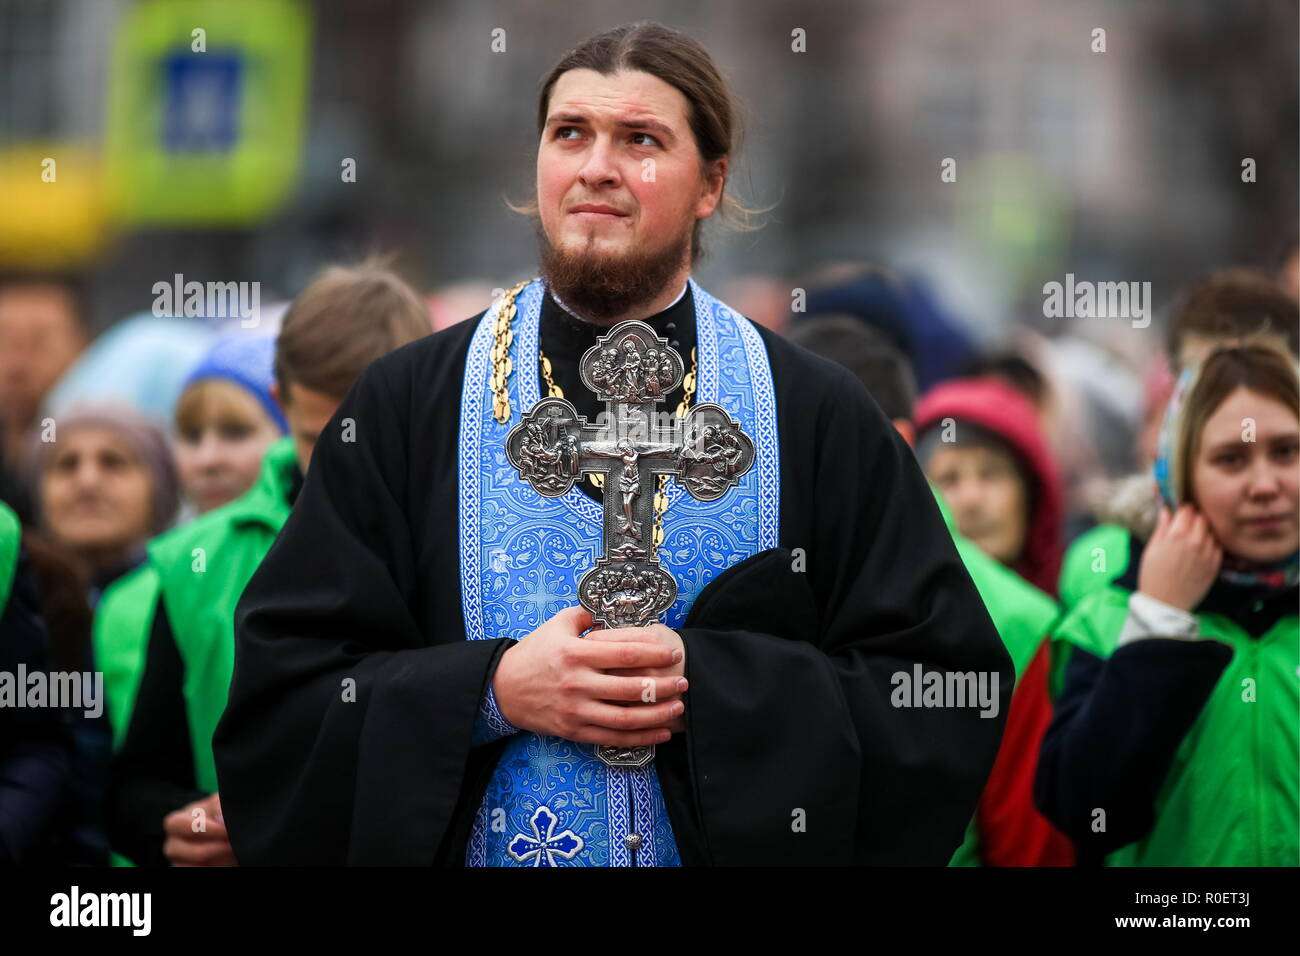 IVANOVO, RUSSIA - NOVEMBER 4, 2018: A Russian Orthodox priest with a crucifix during a procession marking the Feast Day of the Kazan Icon of the Mother of God in the city of Ivanovo. Vladimir Smirnov/TASS - Stock Image